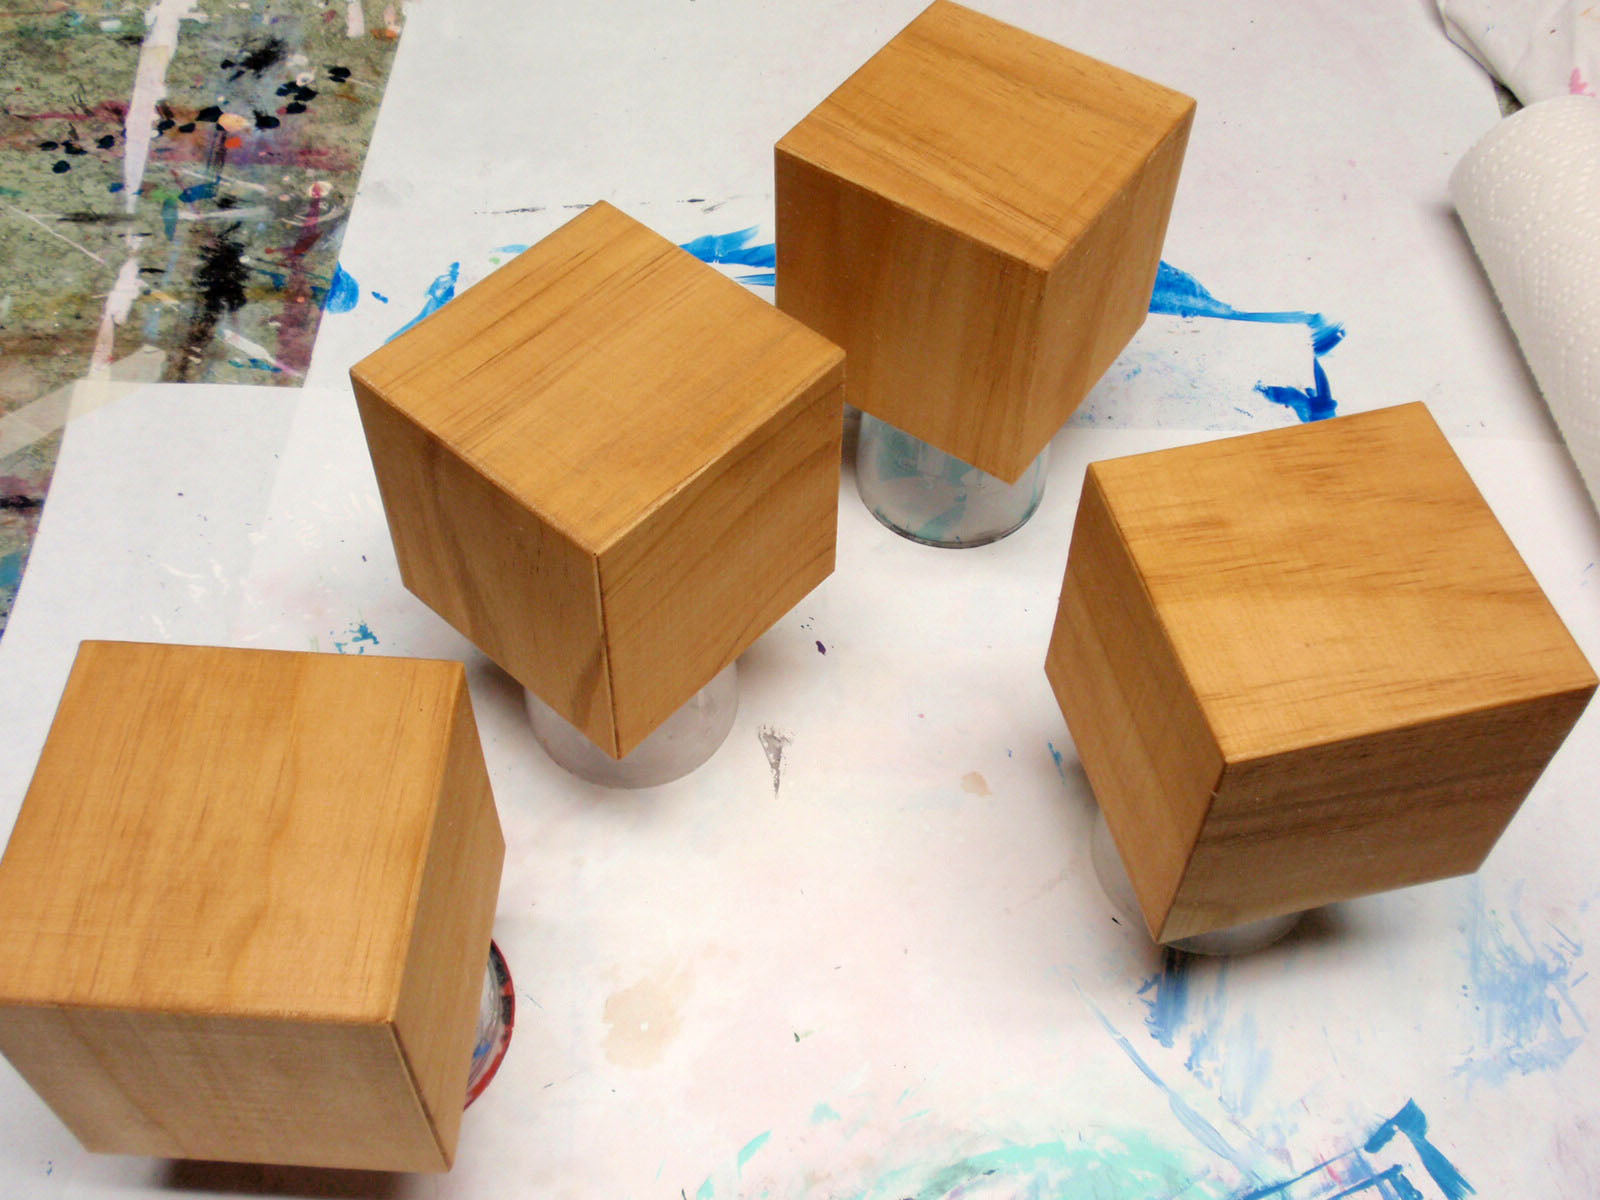 paint or stain blocks